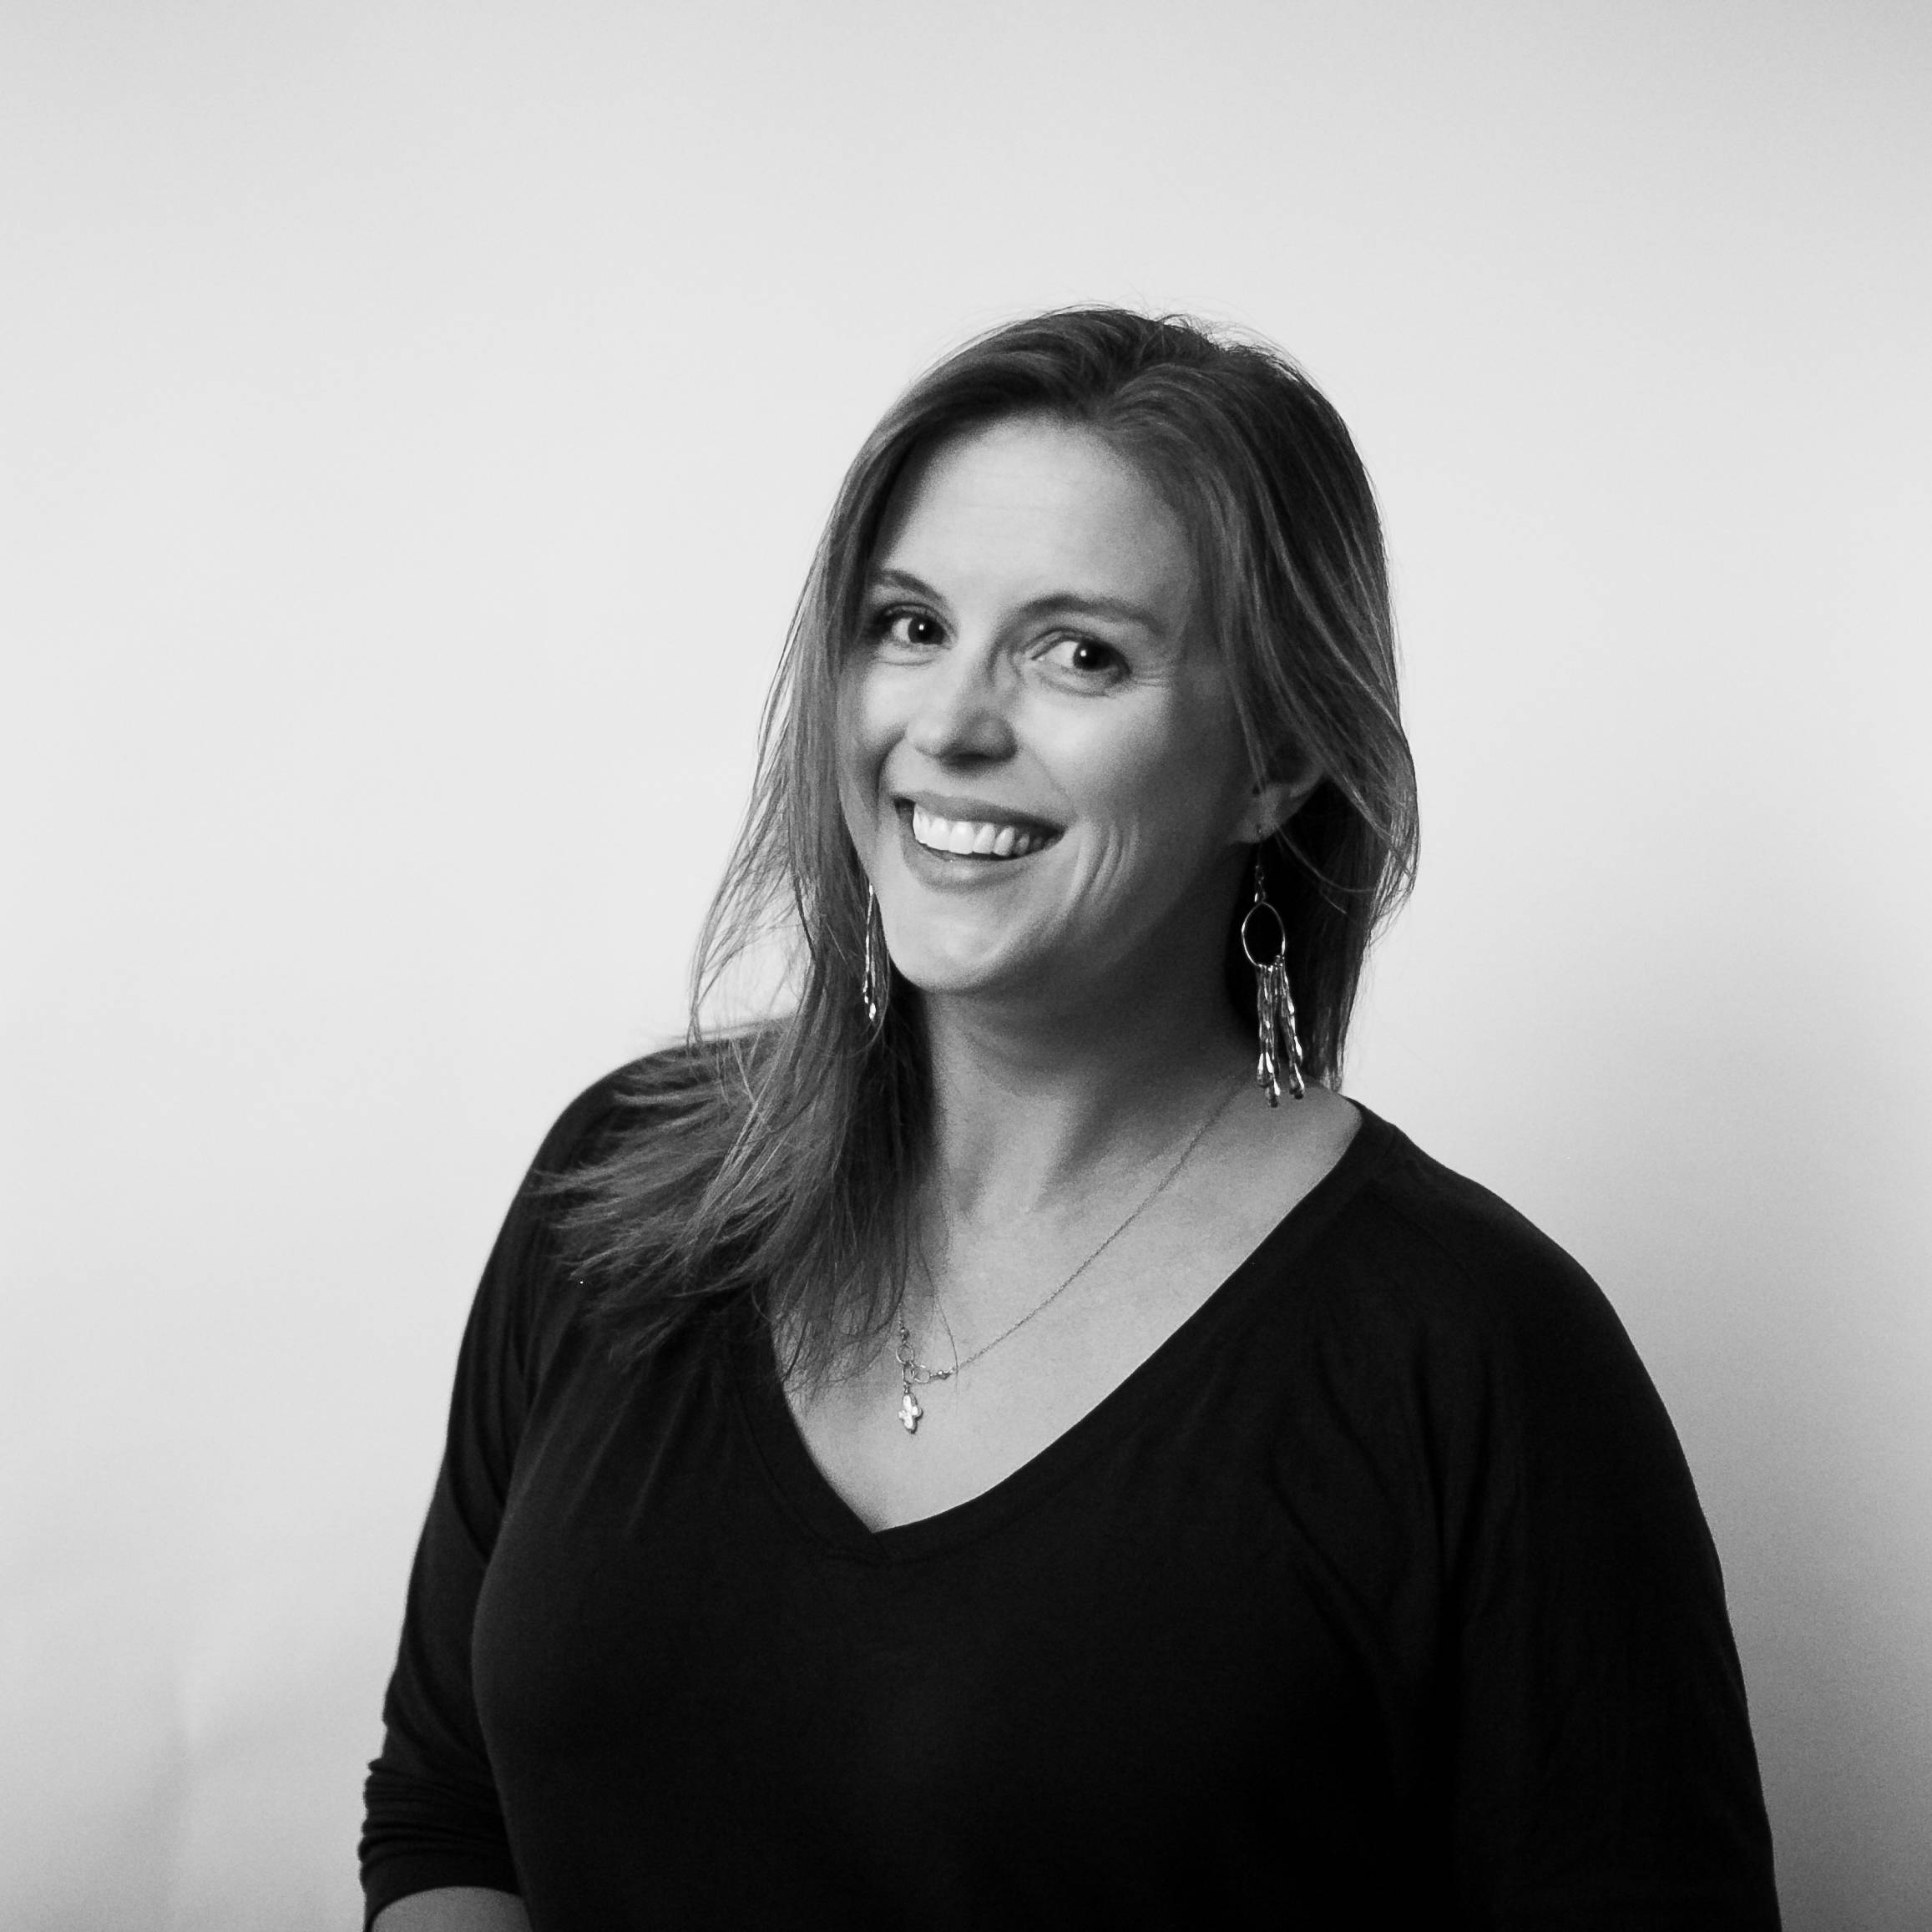 Photo of Courtney Silvernail - Director of Digital Marketing and Development